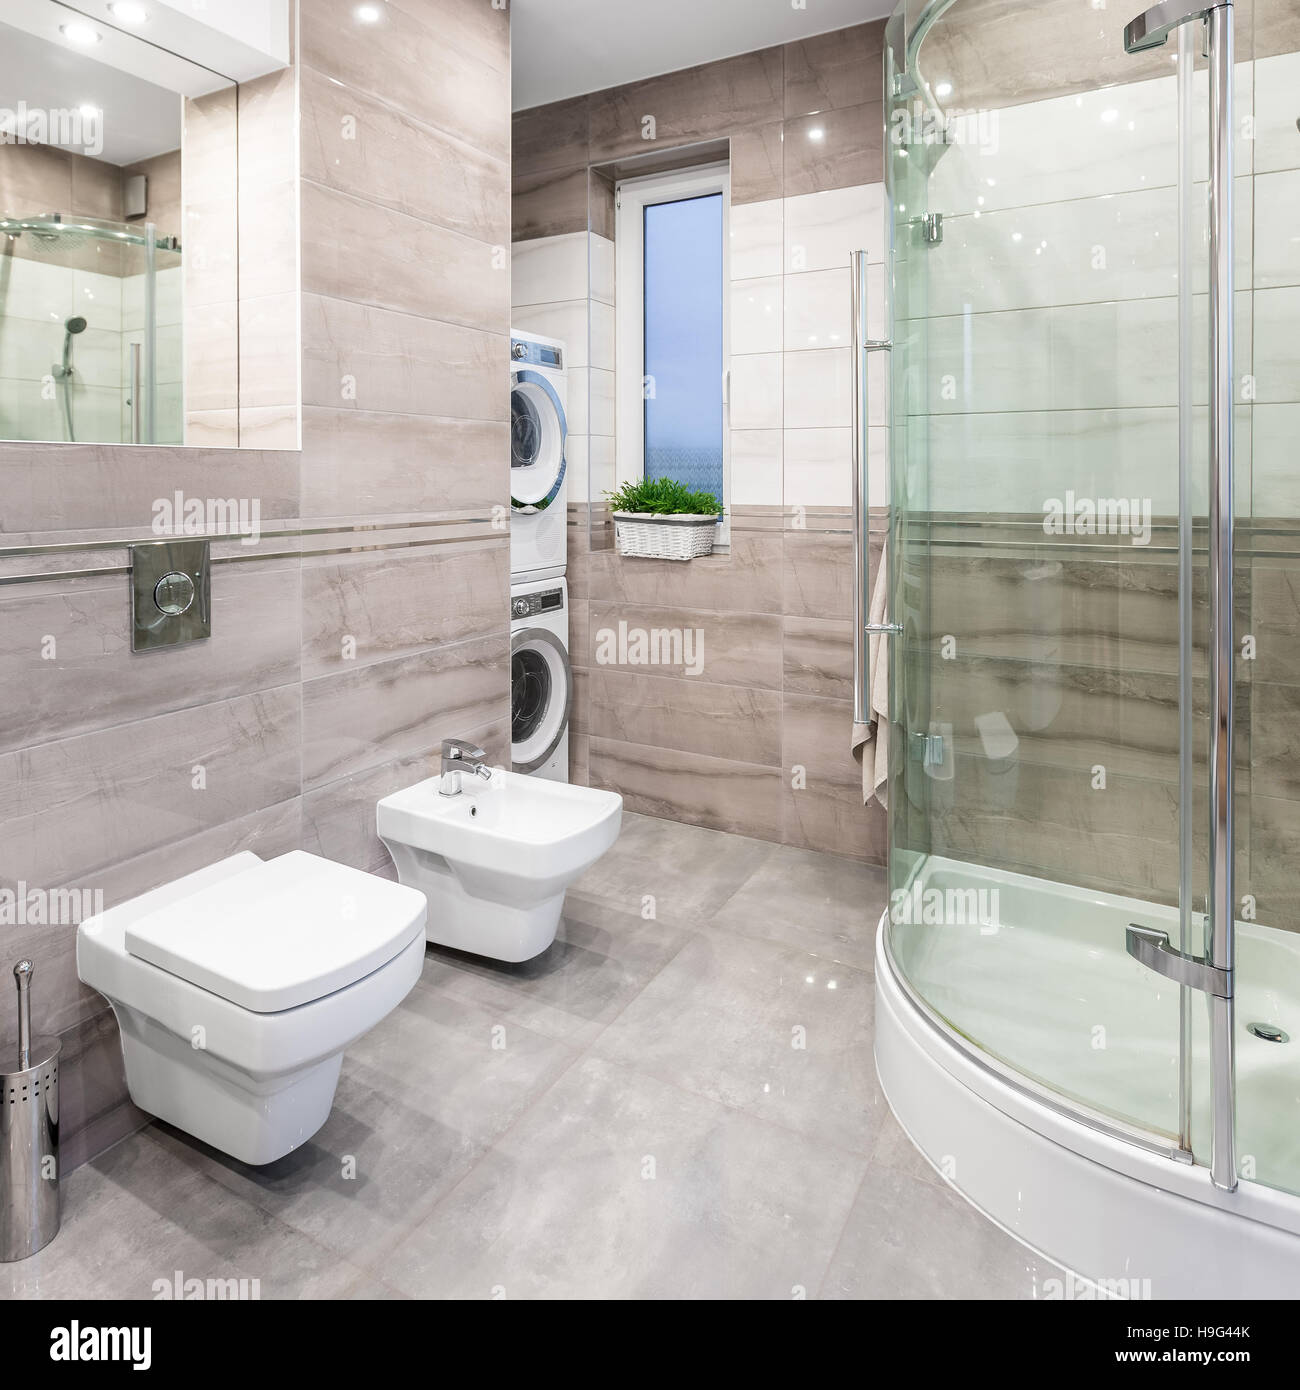 Outstanding Spacious High Gloss Bathroom With Mirror Toilet Bidet Pabps2019 Chair Design Images Pabps2019Com